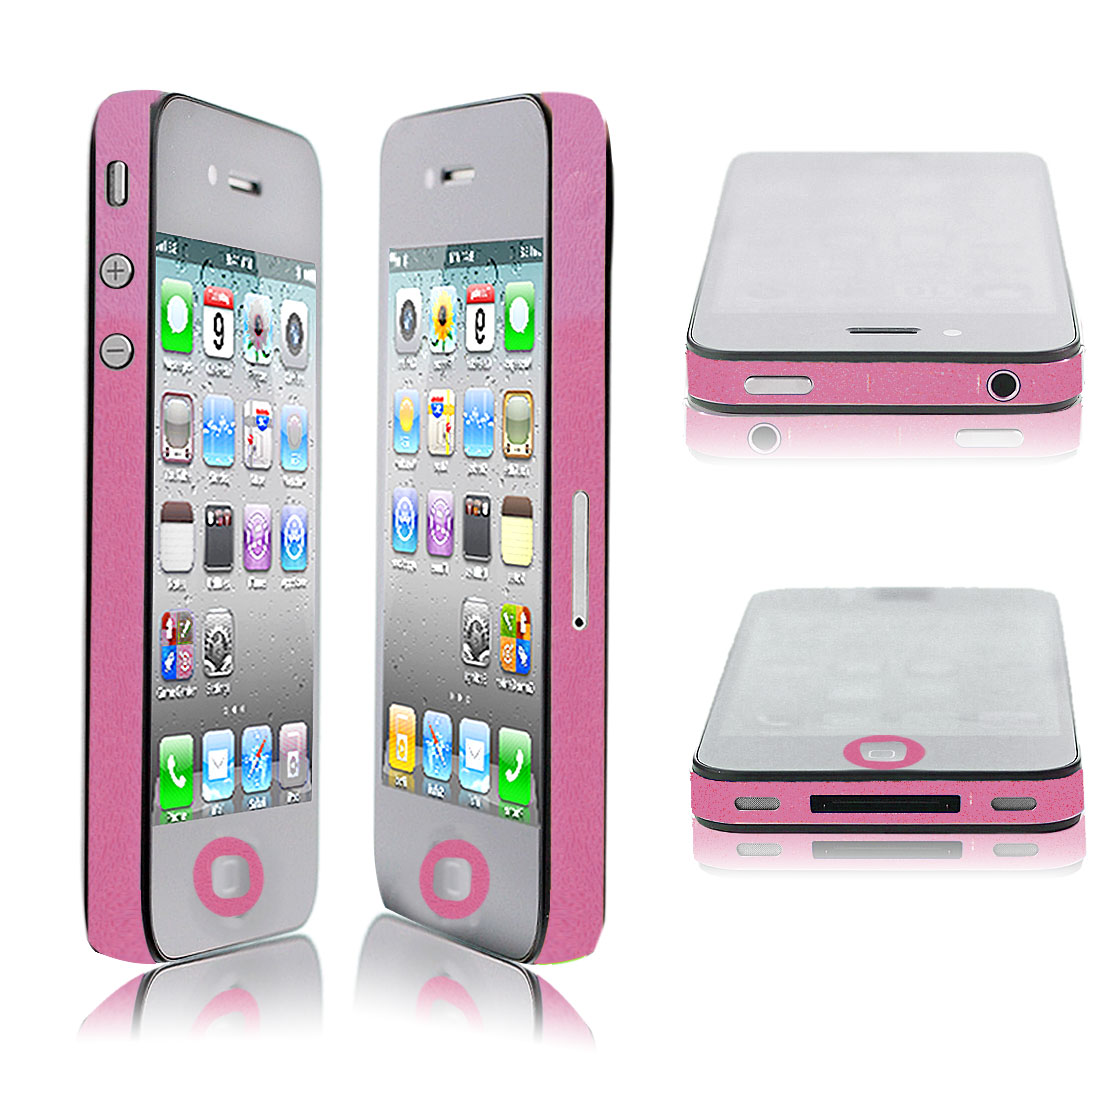 Fuchsia Bumper Side Edge Skin Decal Sticker for Apple iPhone 4 4G 4GS 4S